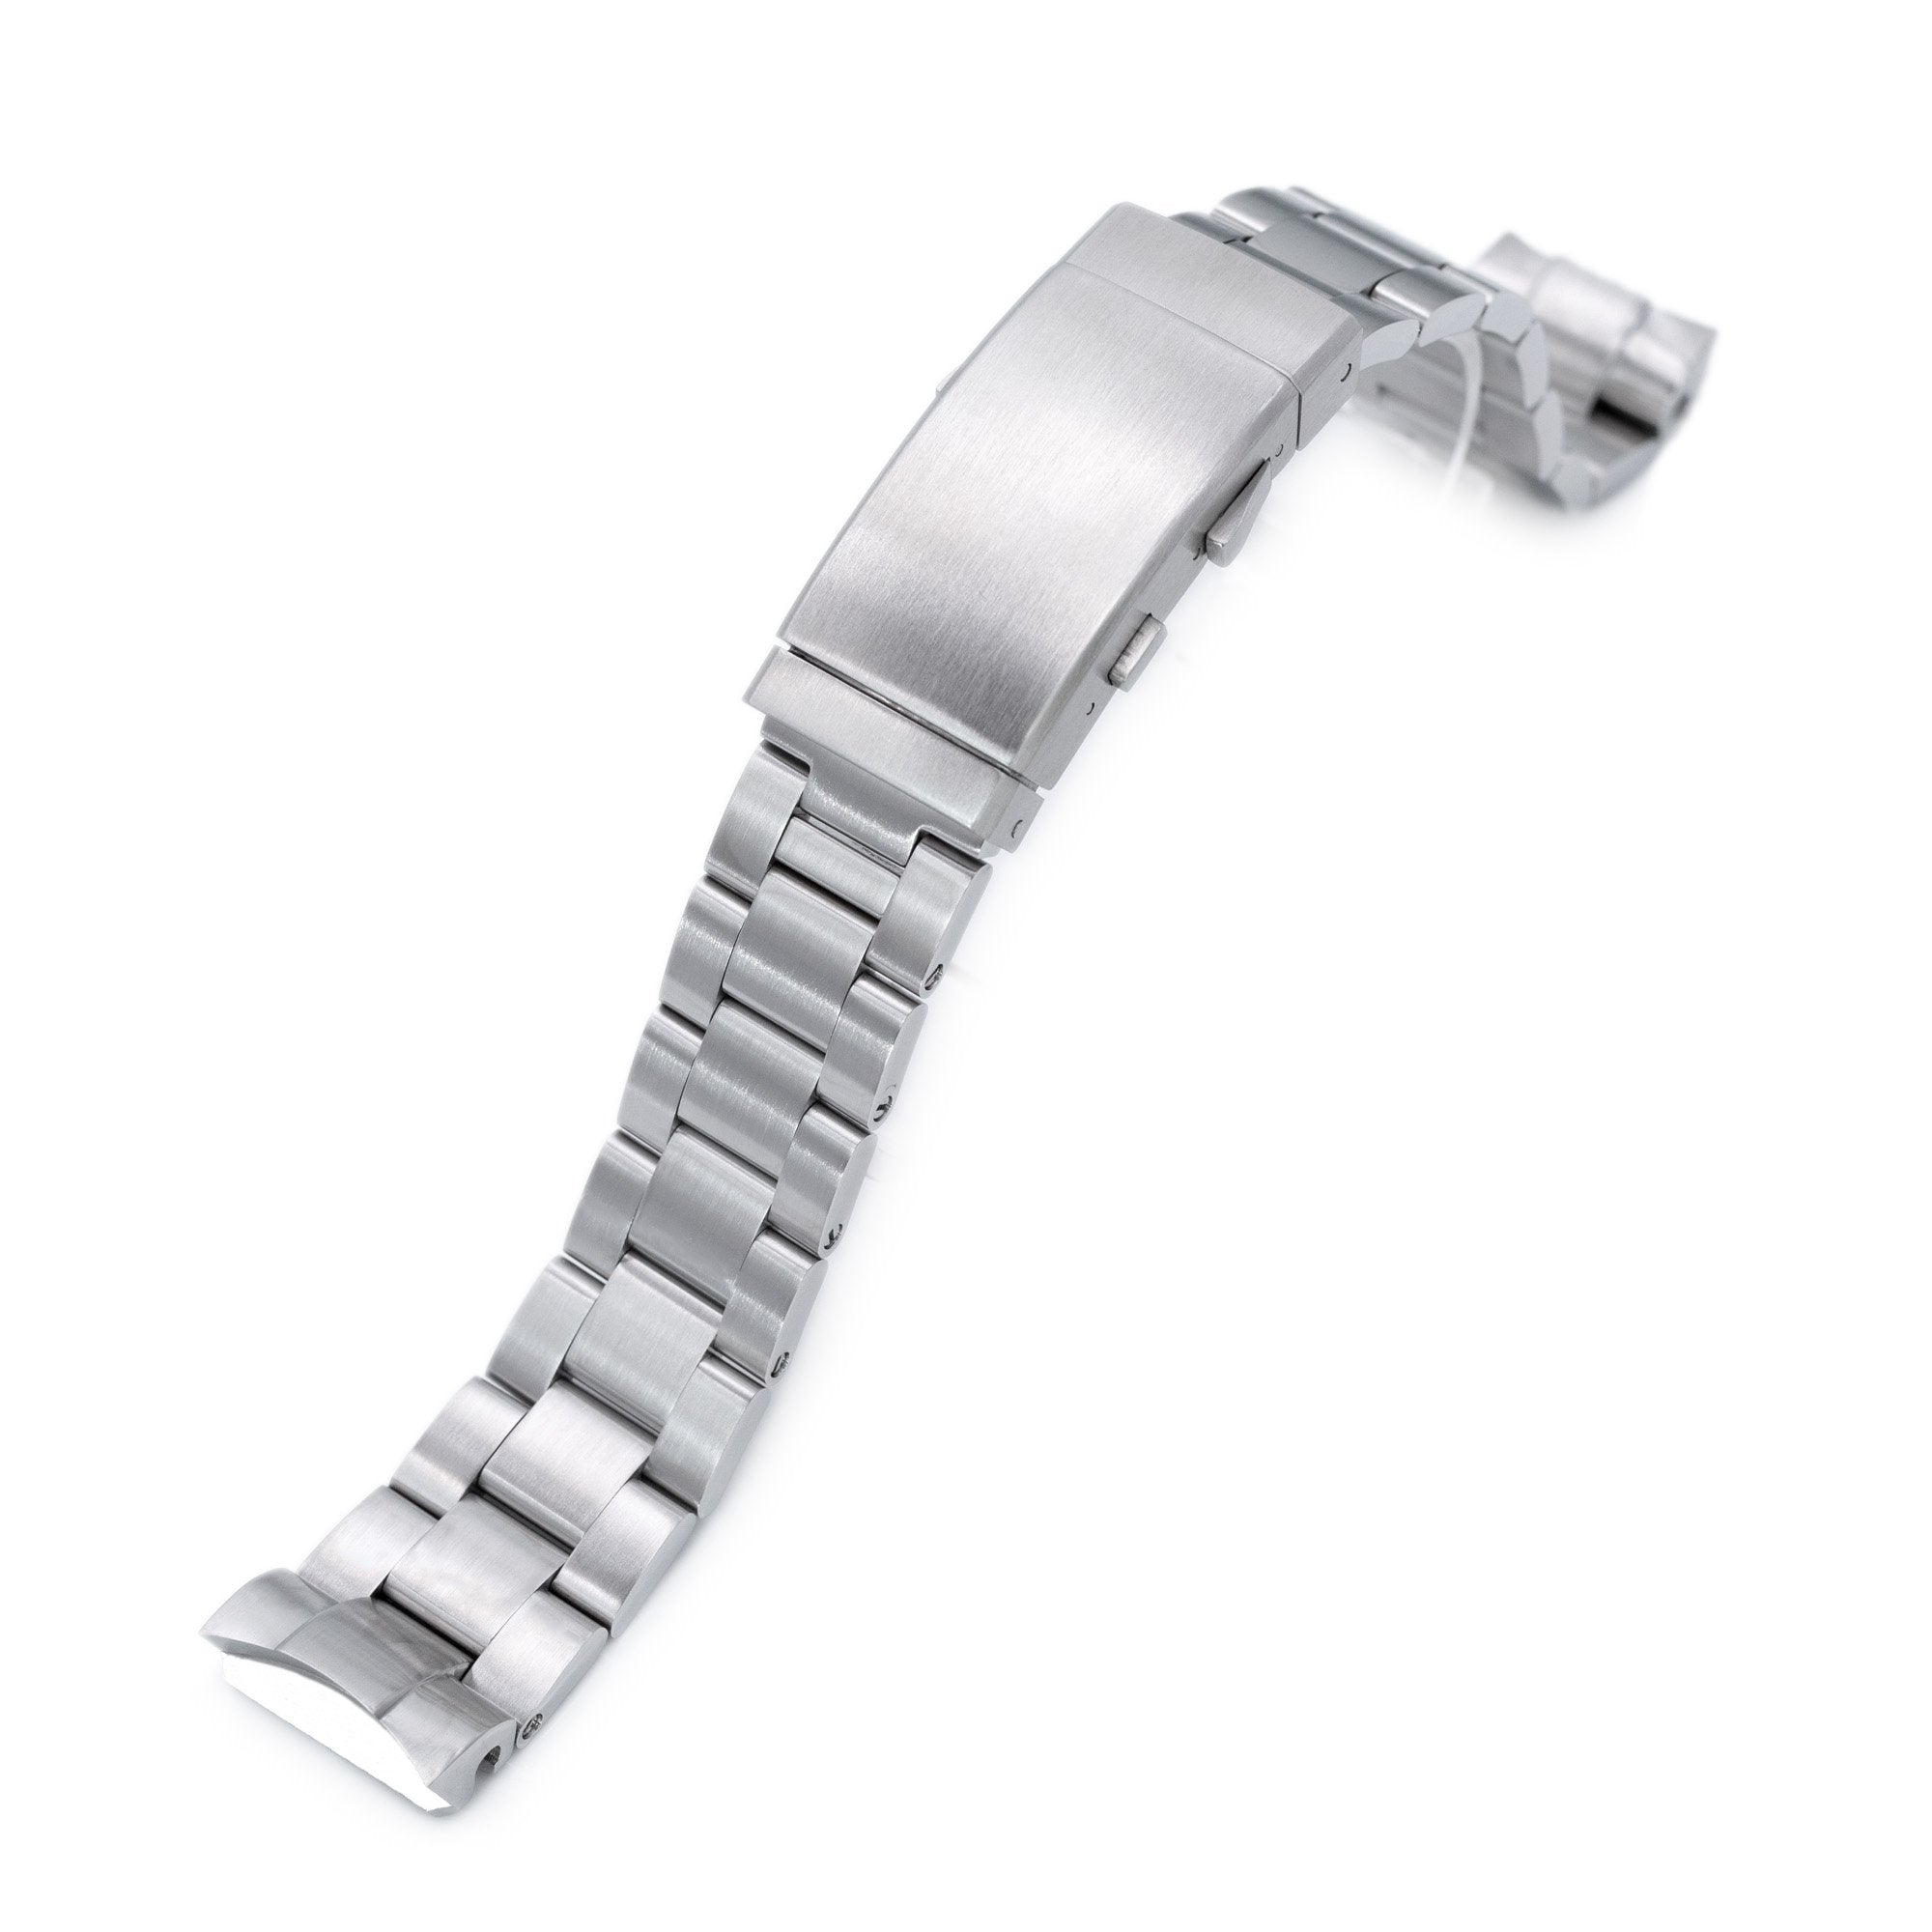 20mm Super-O Boyer watch band for Seiko MM300 Prospex Marinemaster SBDX001 SBDX017, Brushed, Wetsuit Ratchet Buckle Strapcode Watch Bands